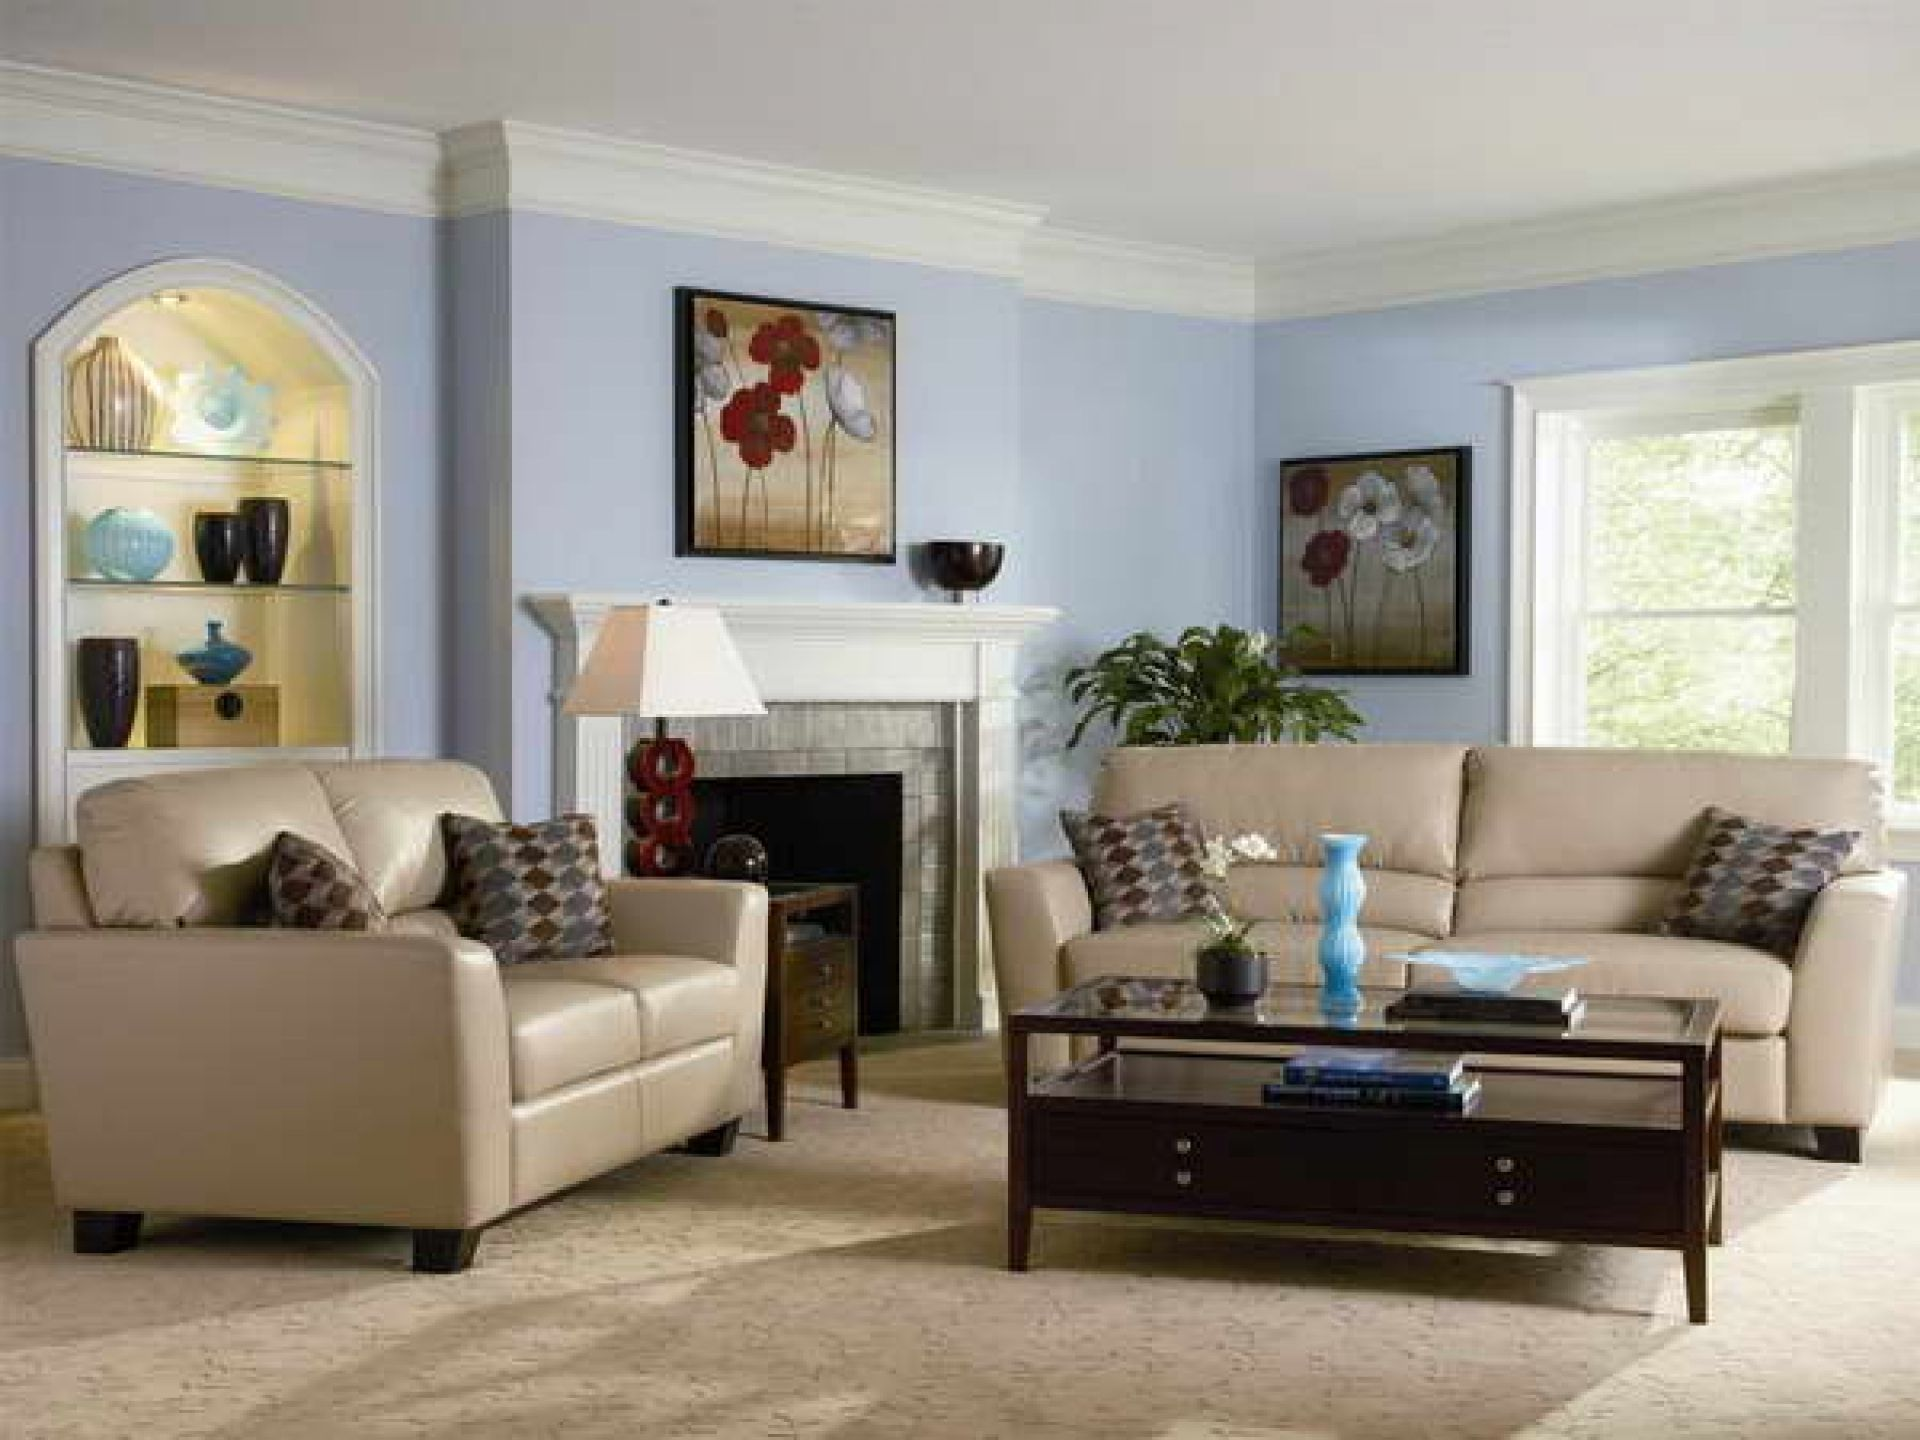 Blue and yellow living room with brown couch - Small Living Room Decorating Ideas Photos Tan Blue Blue Living